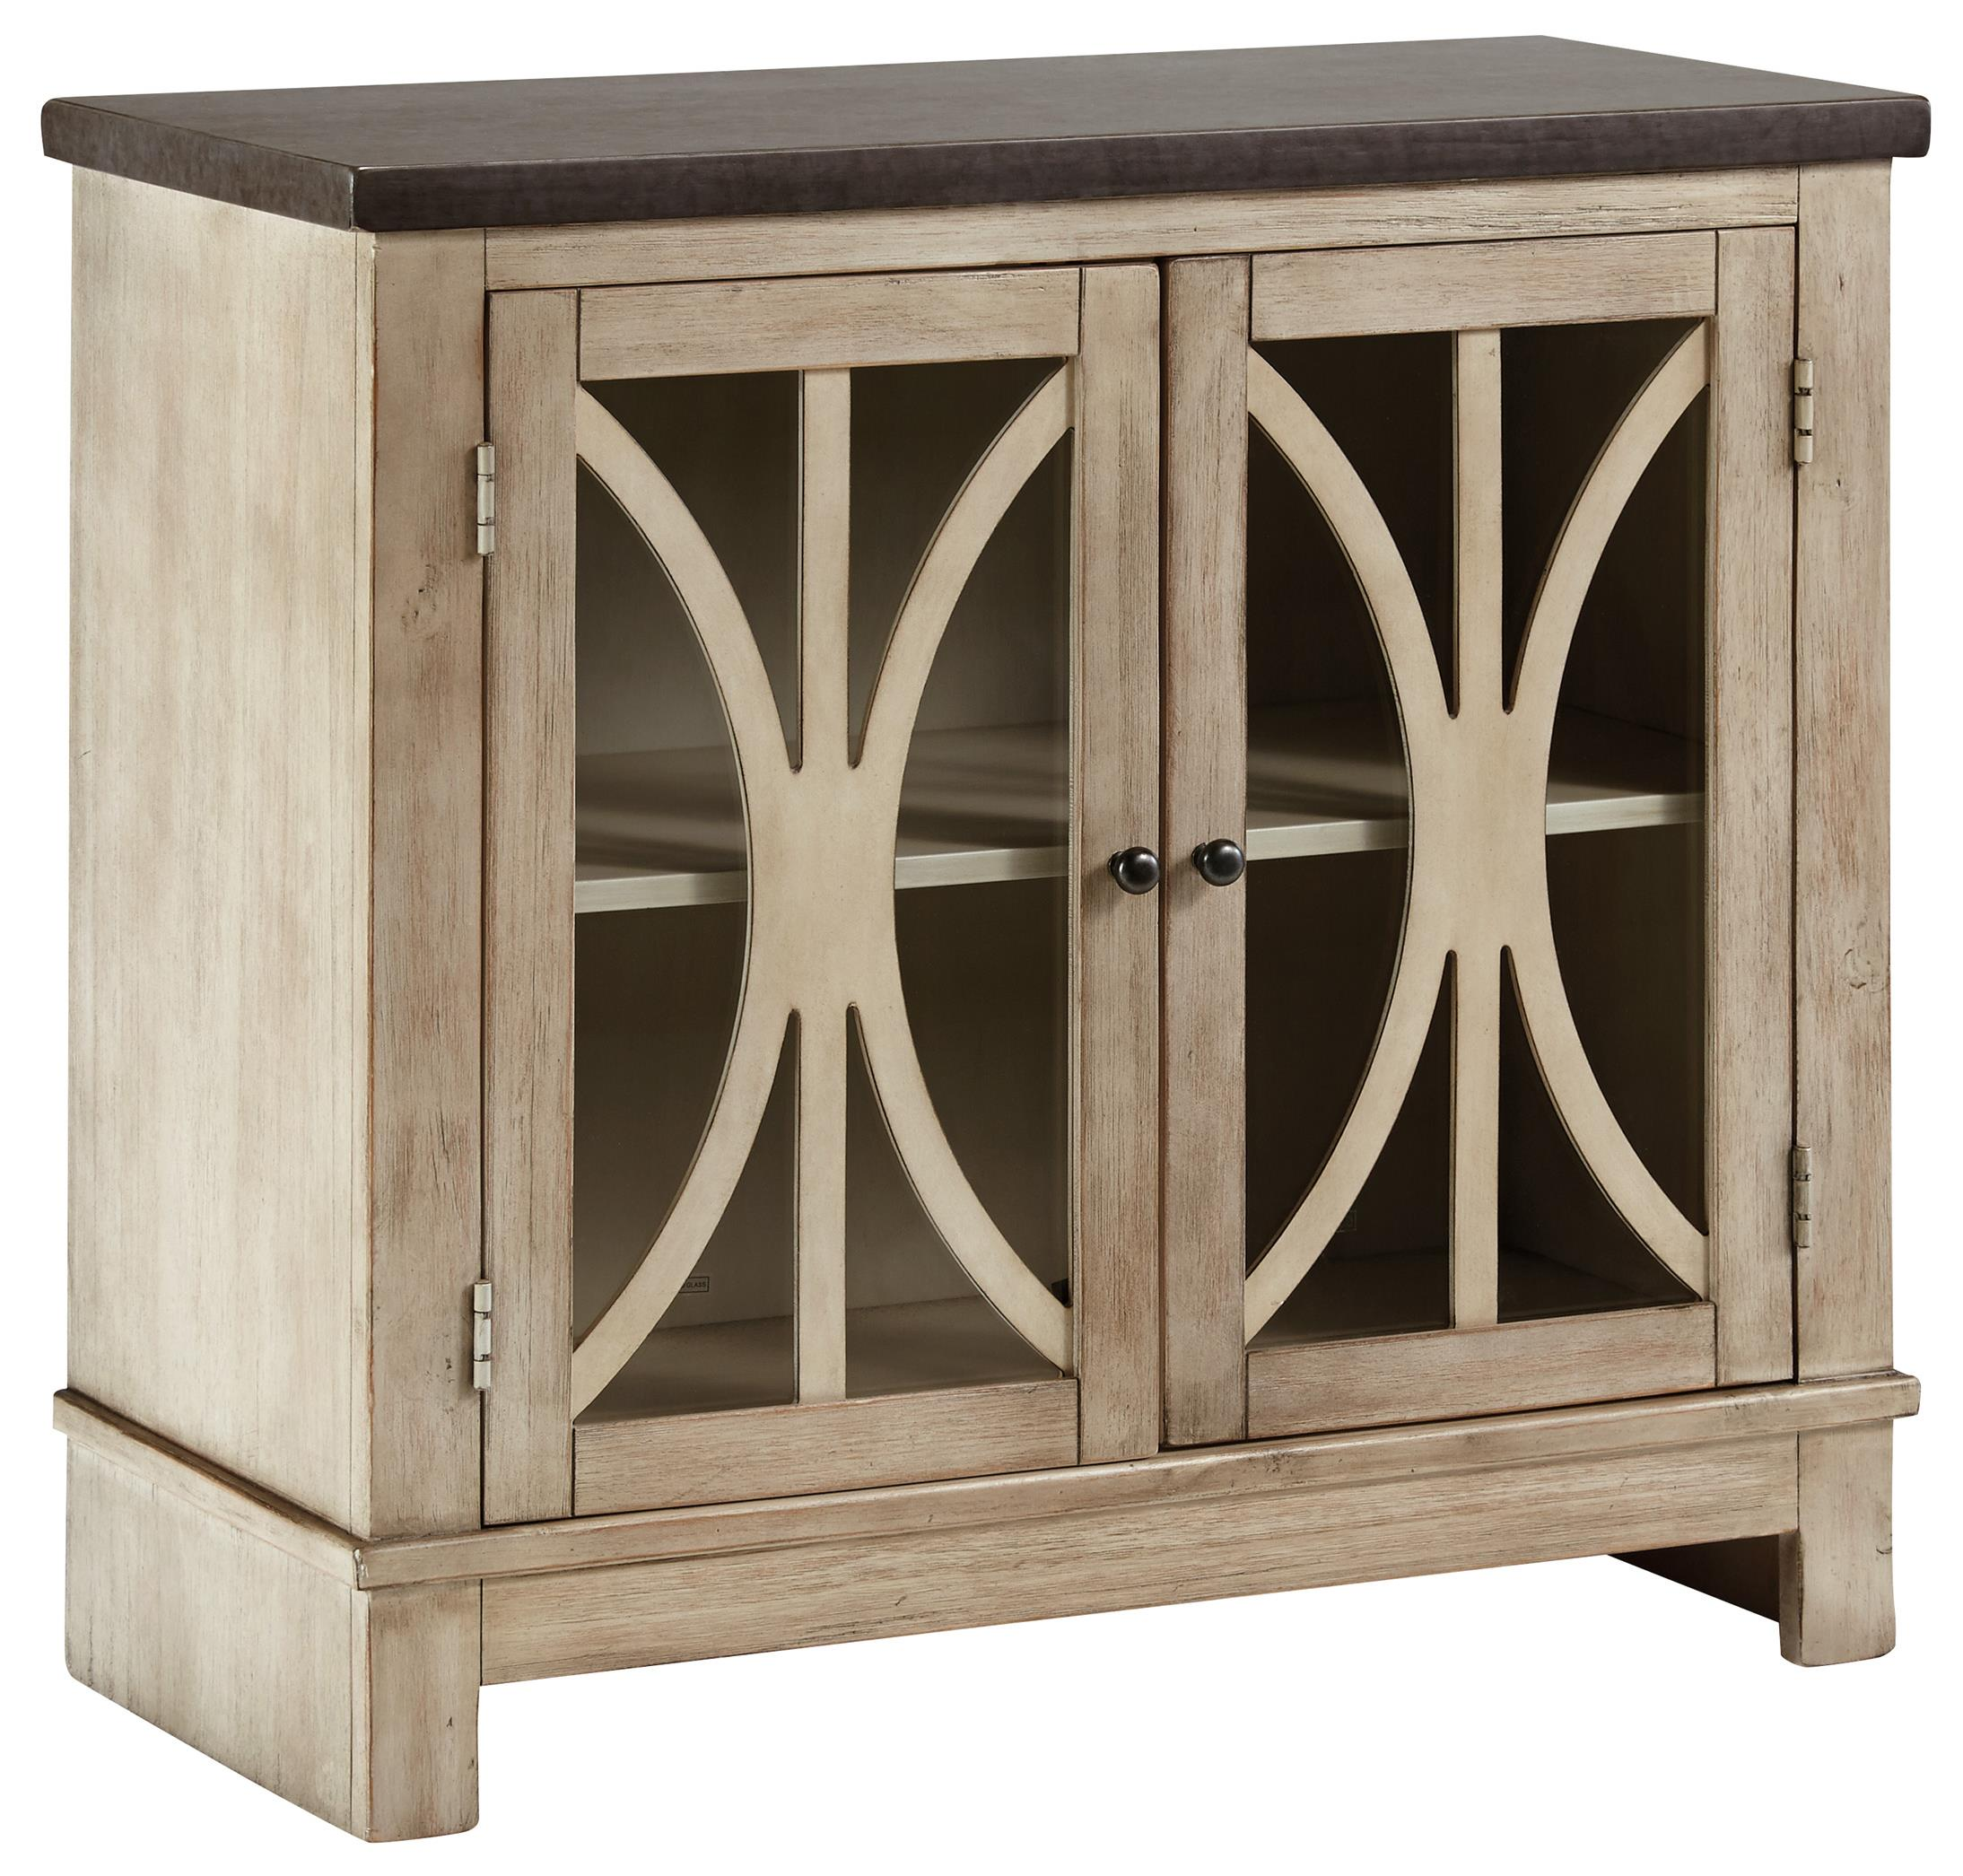 Signature Design by Ashley Vennilux Door Accent Cabinet - Item Number: T500-332